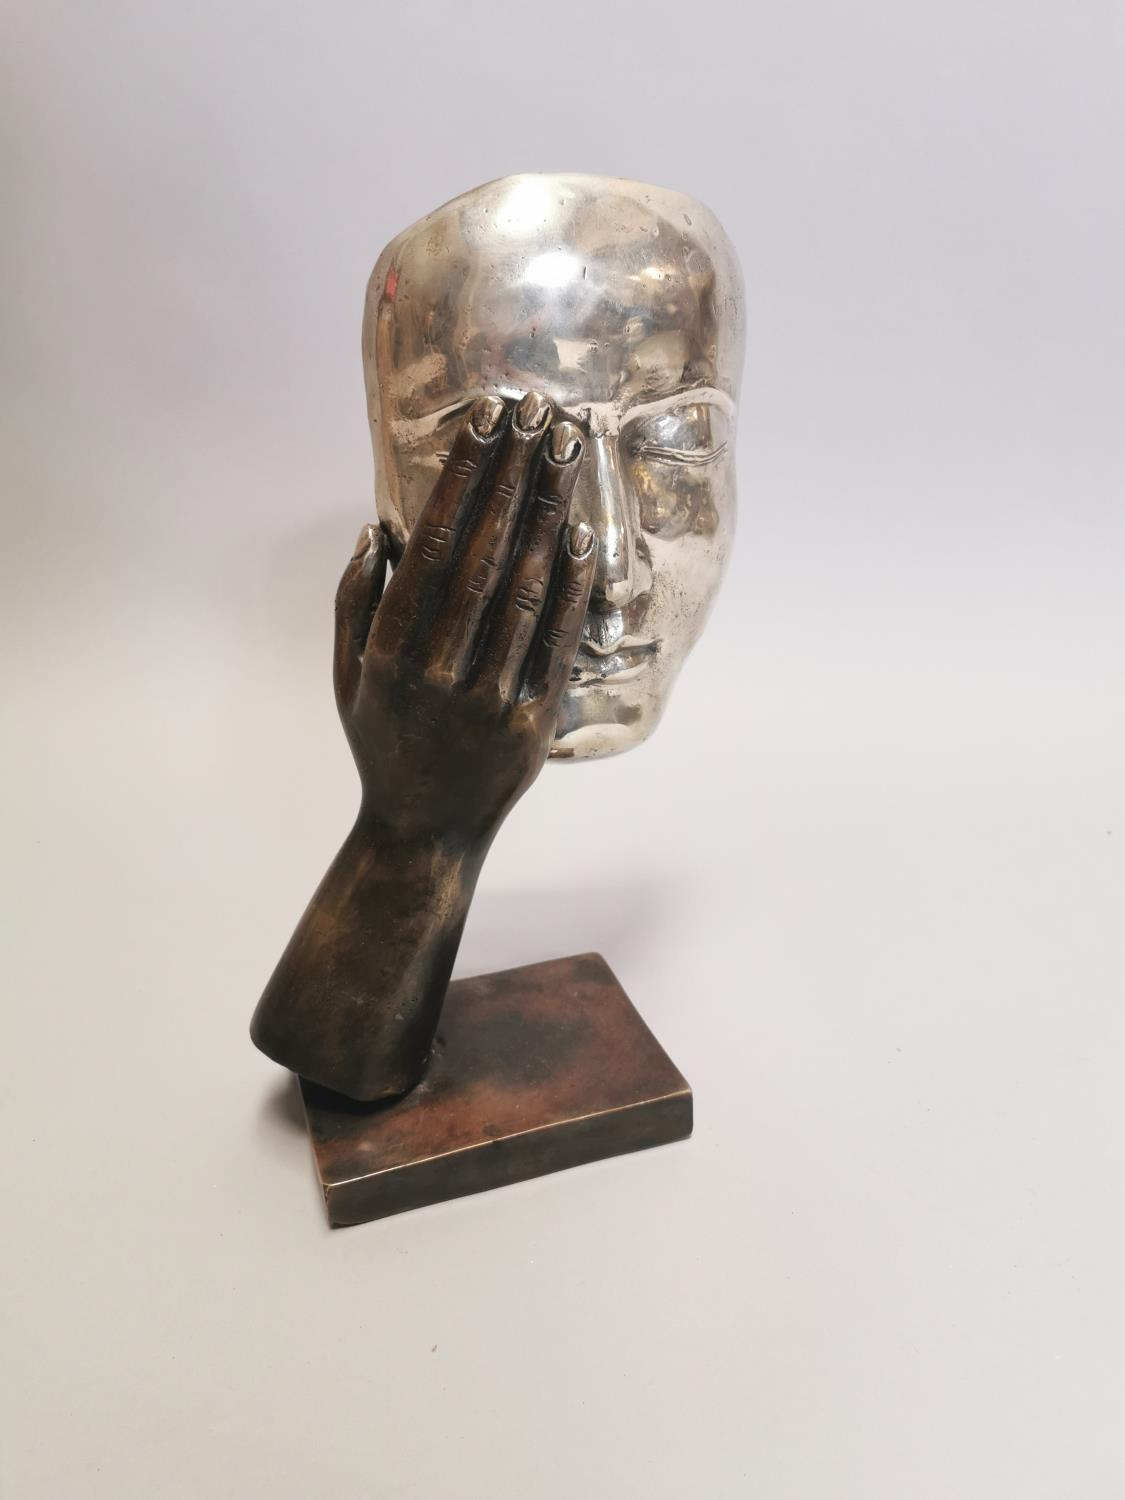 Bronze model of a hand and mask